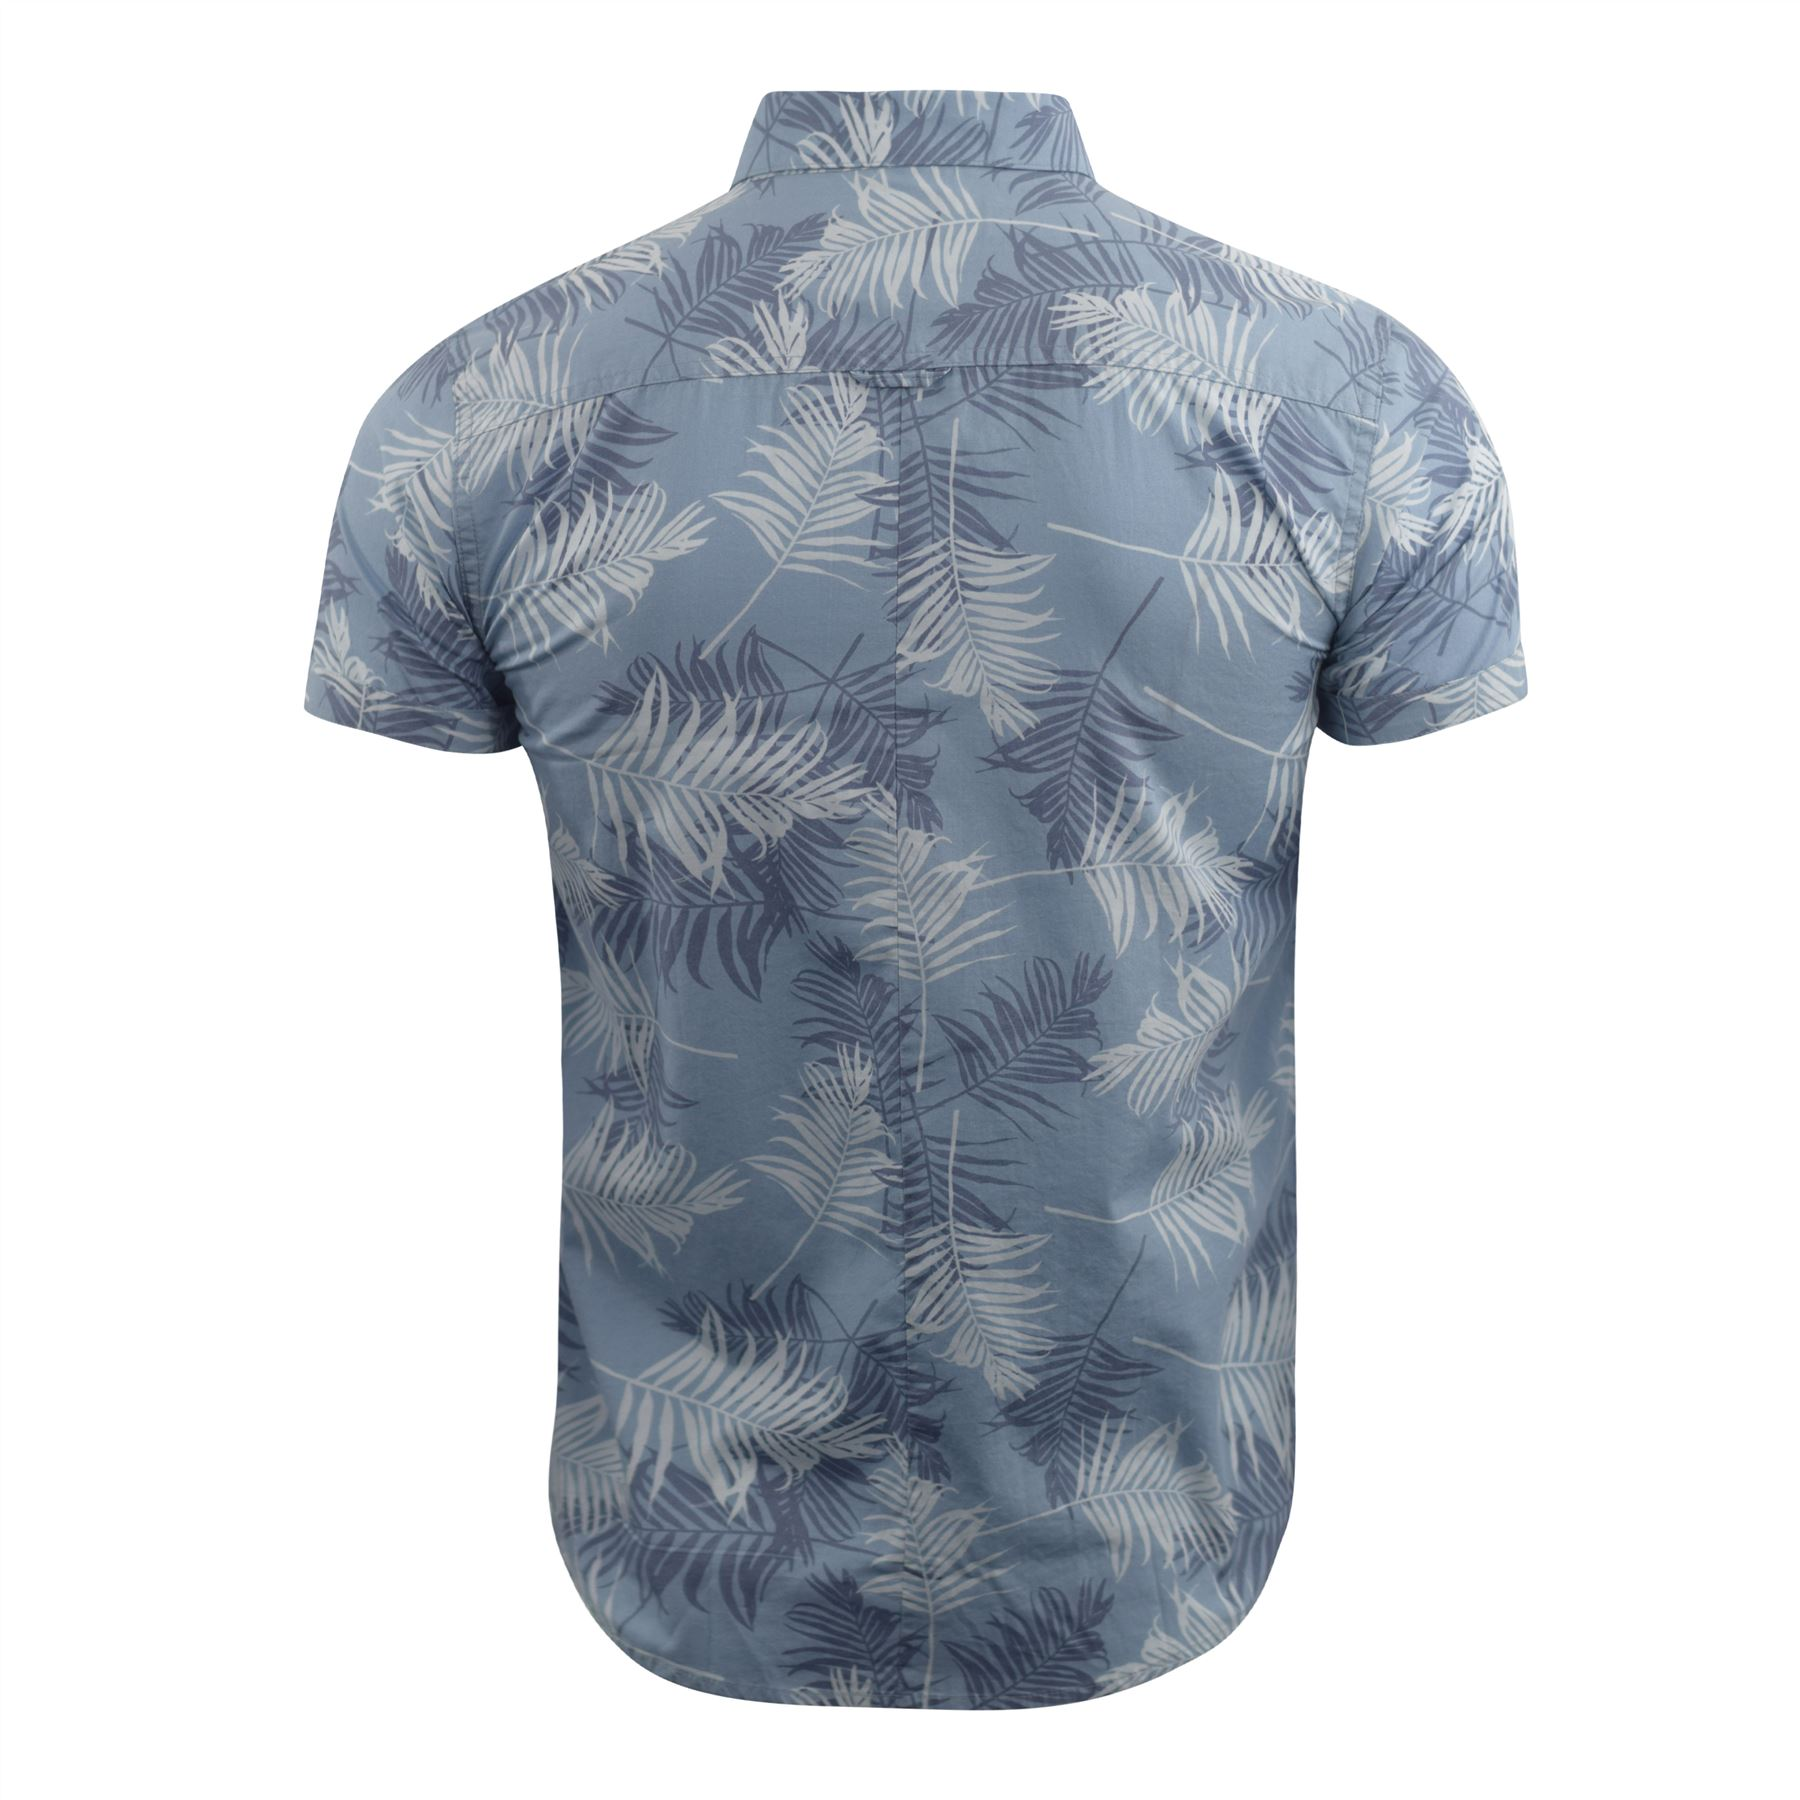 Mens-Floral-Shirt-Audley-Short-Sleeved-Cotton-Blend-Casual-Top thumbnail 5